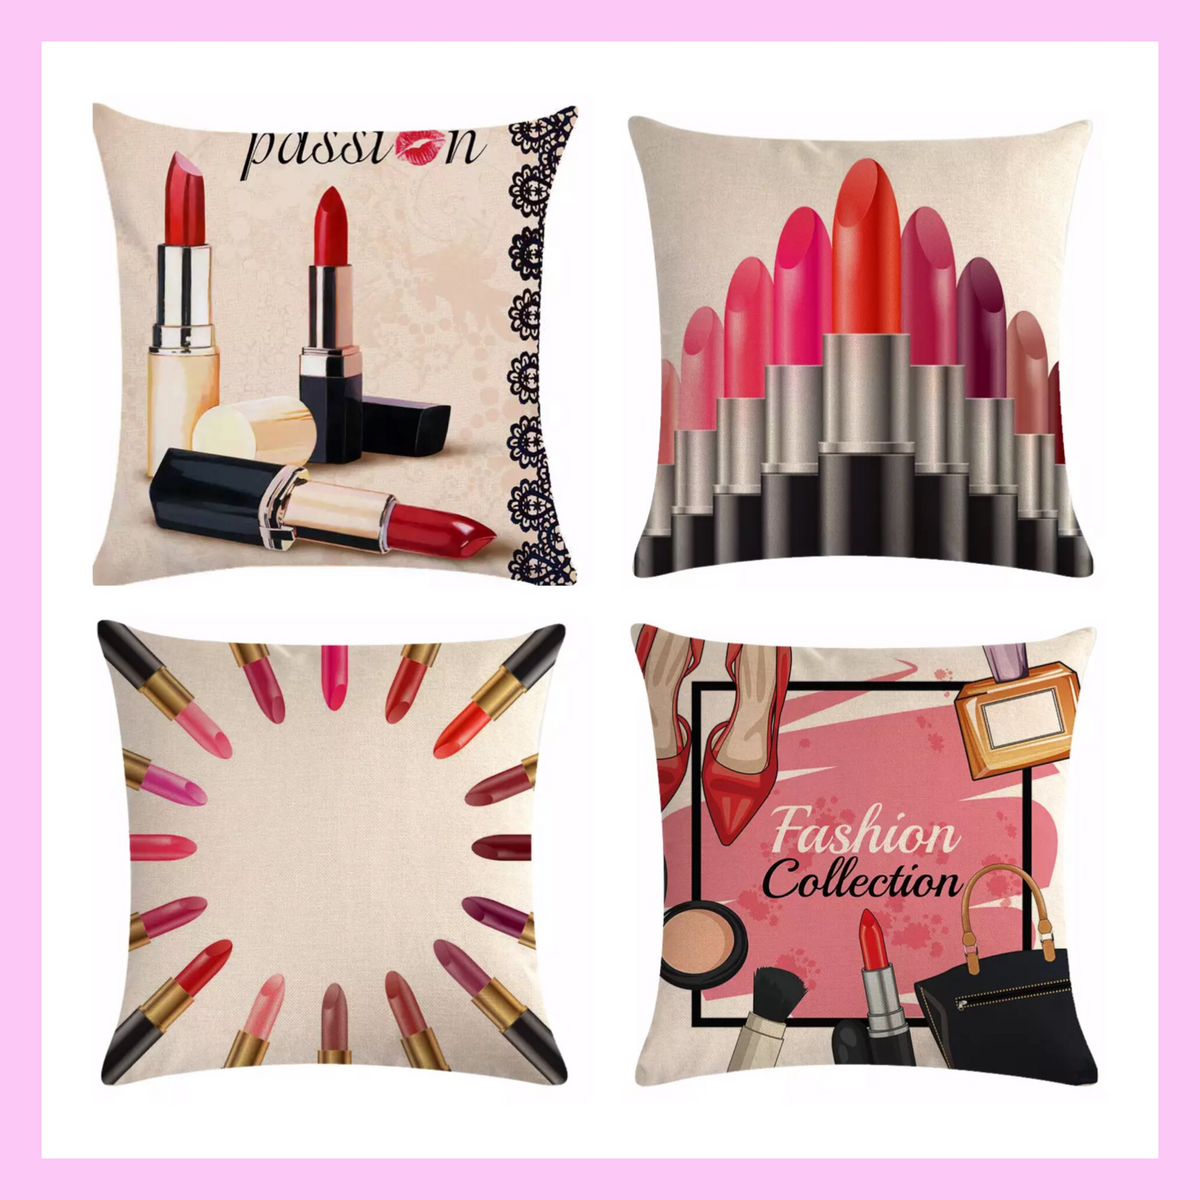 Cosmetic Makeup Lipstick Throw Pillows Off White - lexinoelbeauty.com